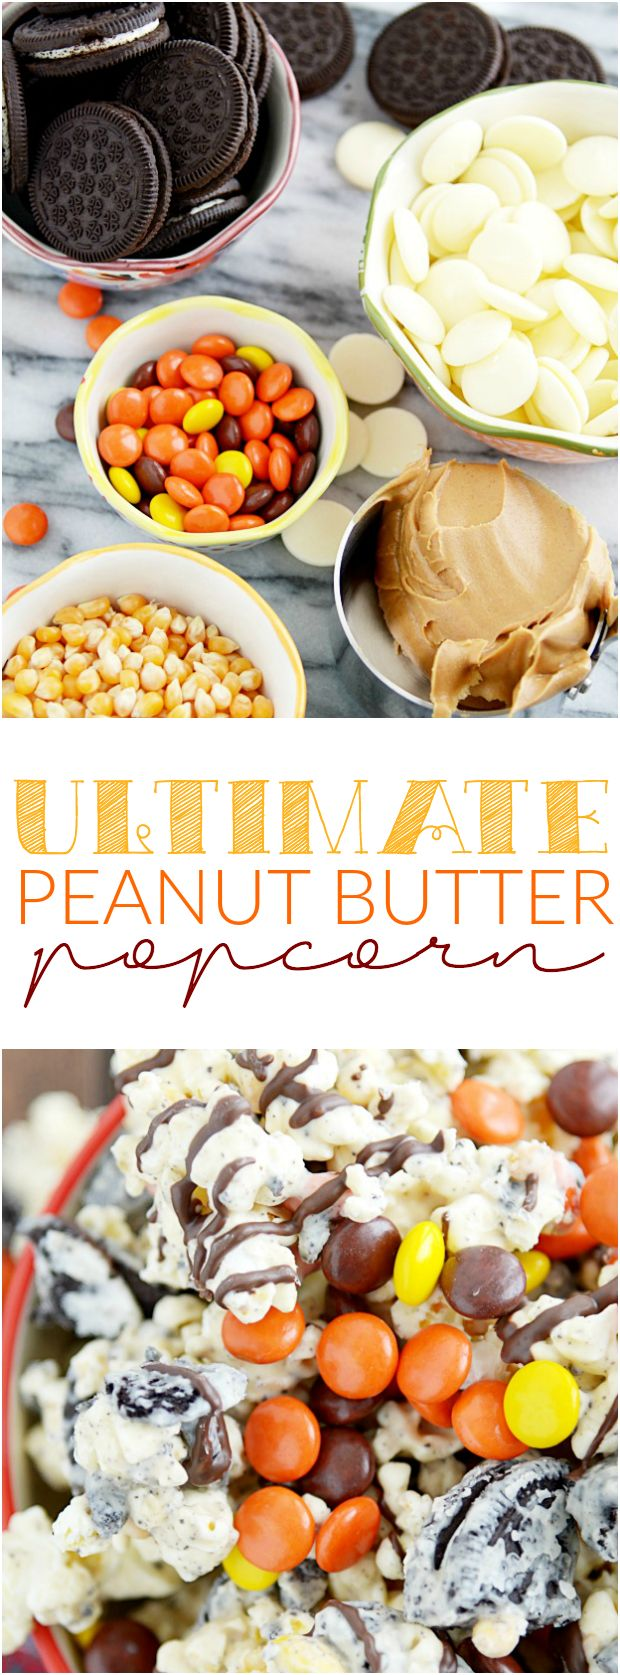 This recipe for Peanut Butter Popcorn is so good! It has Oreos, peanut butter, and Reese's Pieces. Quick and easy treat!